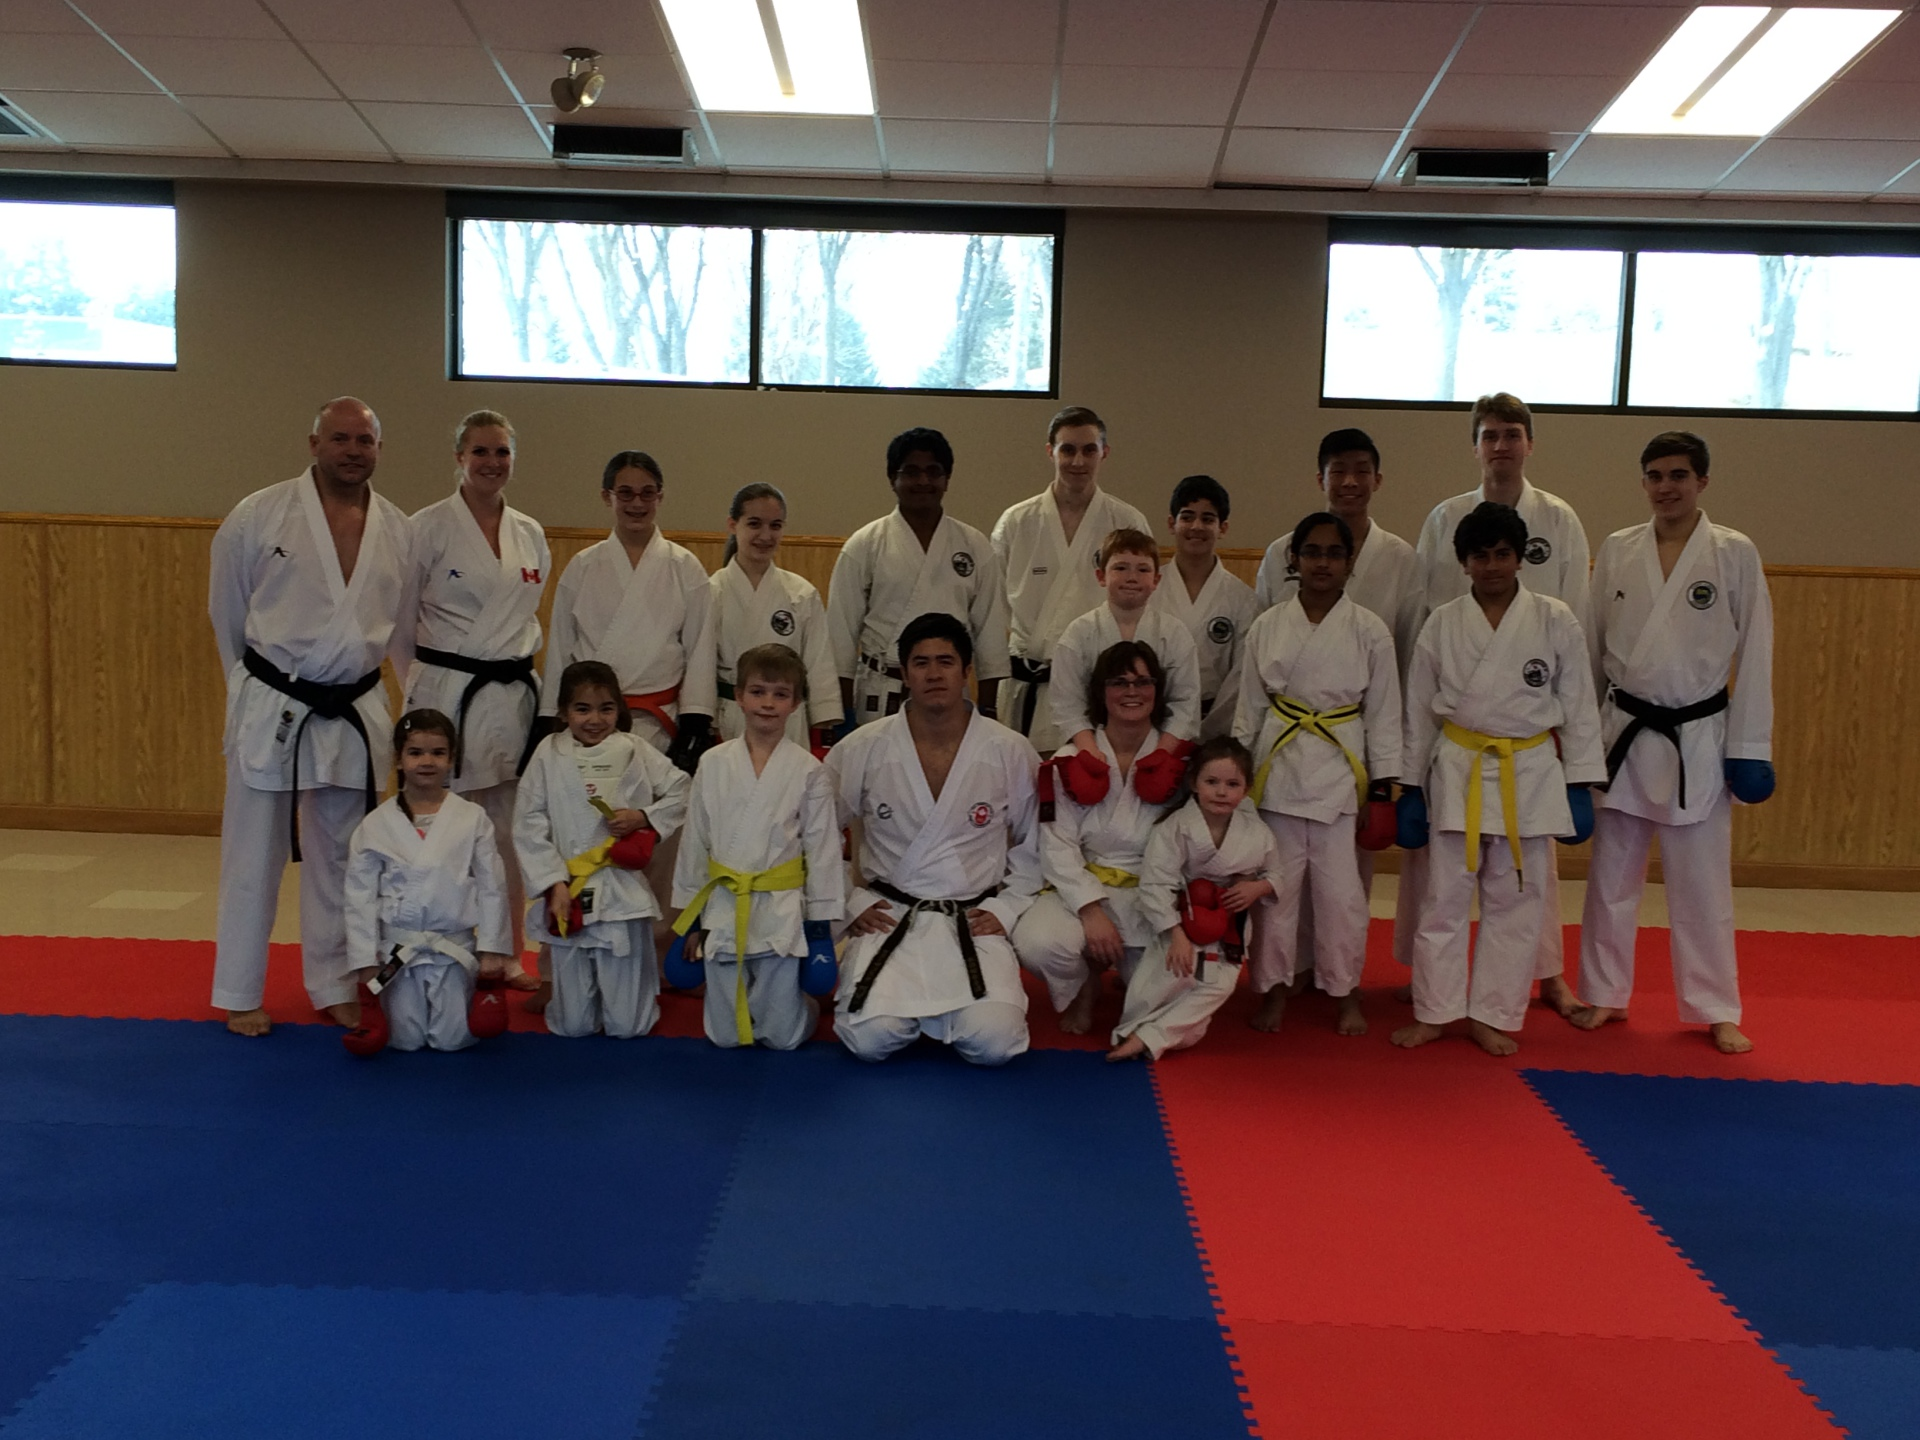 ASK Presents Chris De Sousa Costa Training Camp